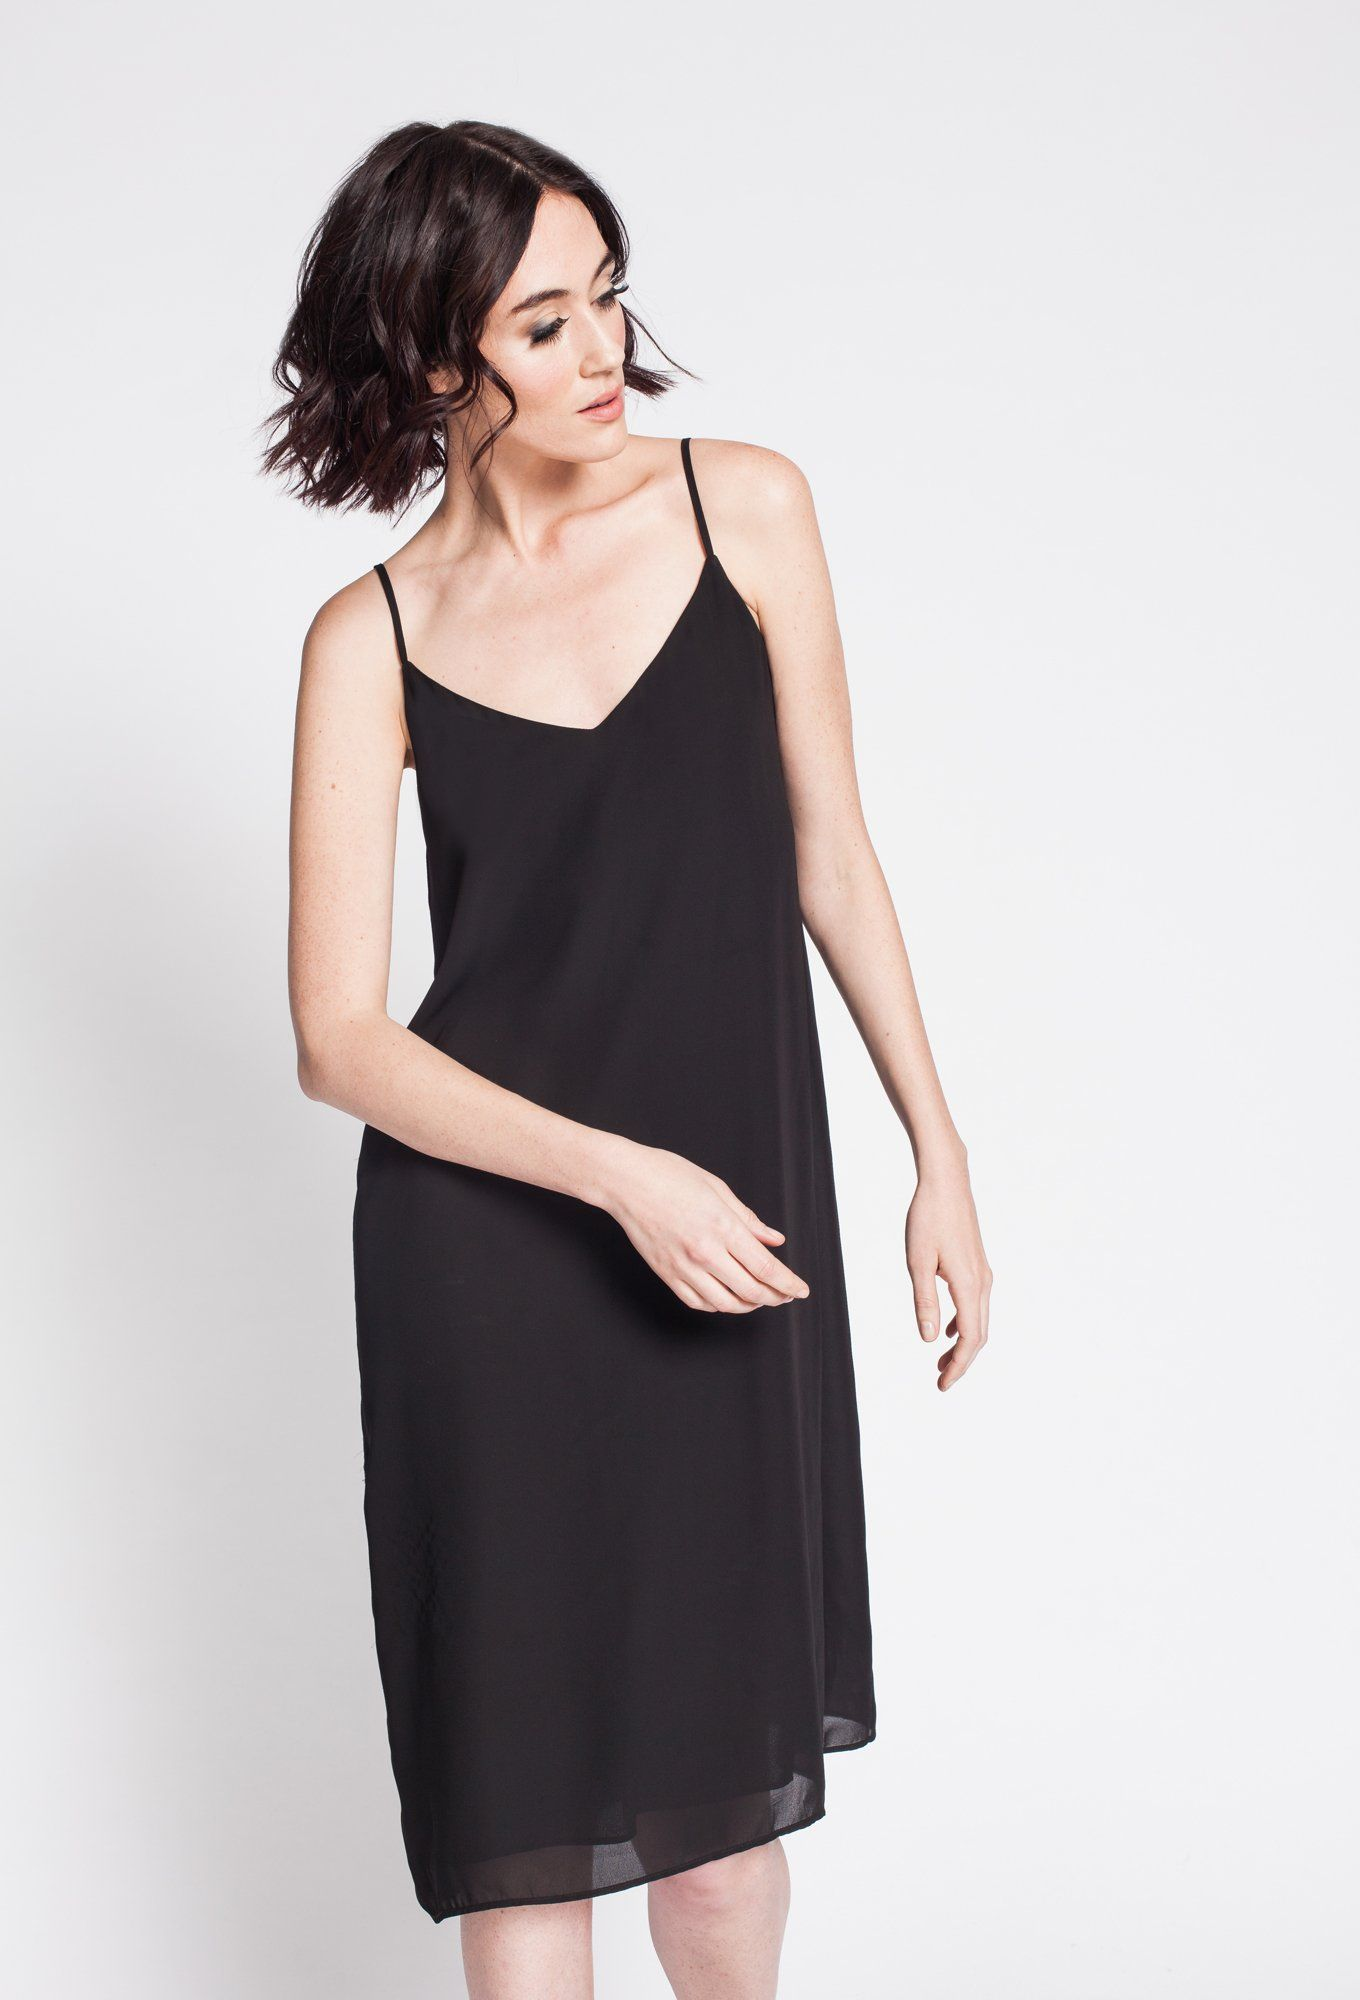 The Piper Slip dress from Noel Asmar. Seen here in Black, also available in Champagne Pink and Luna.